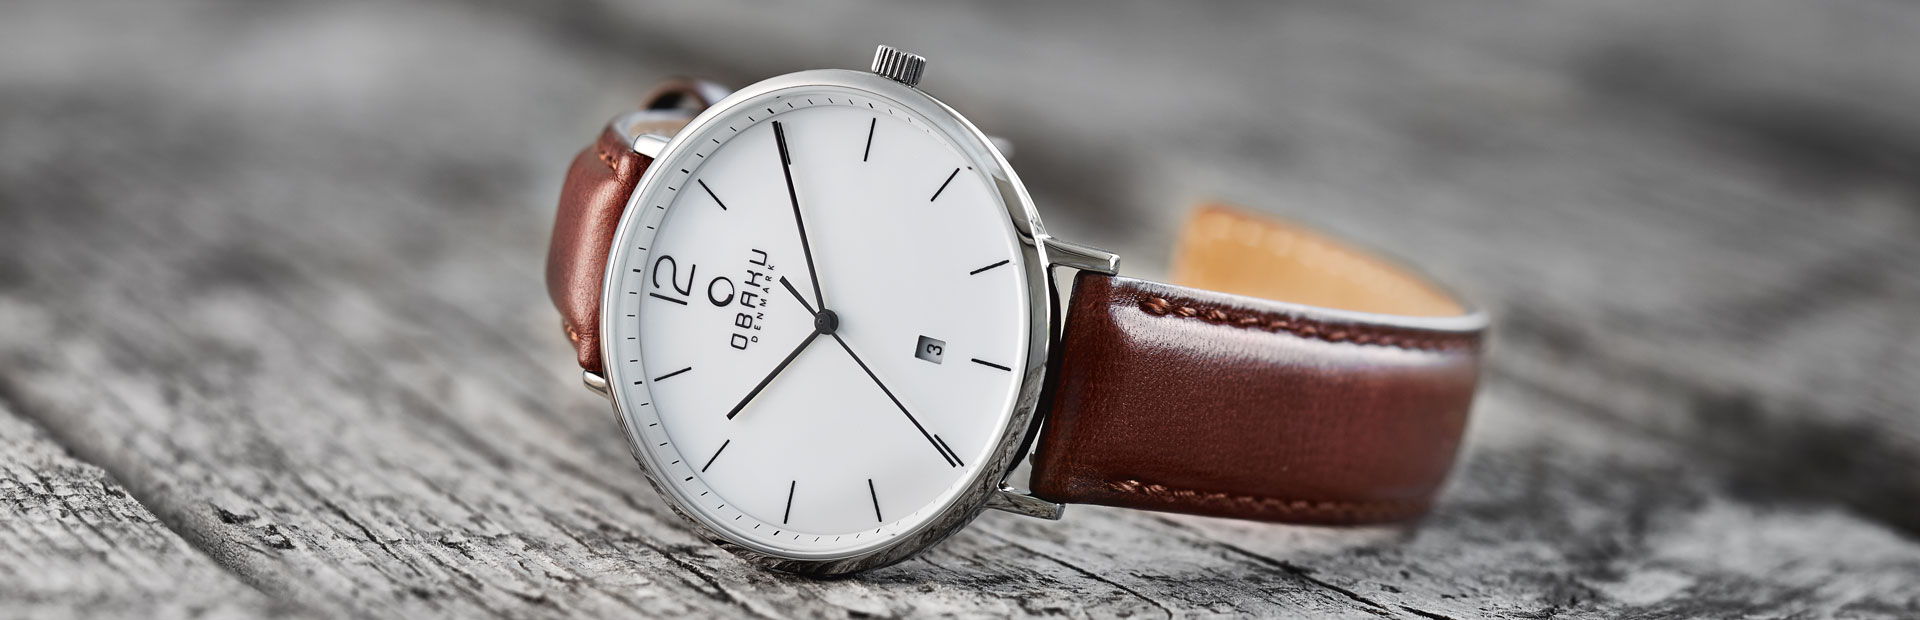 Obaku danish design watch